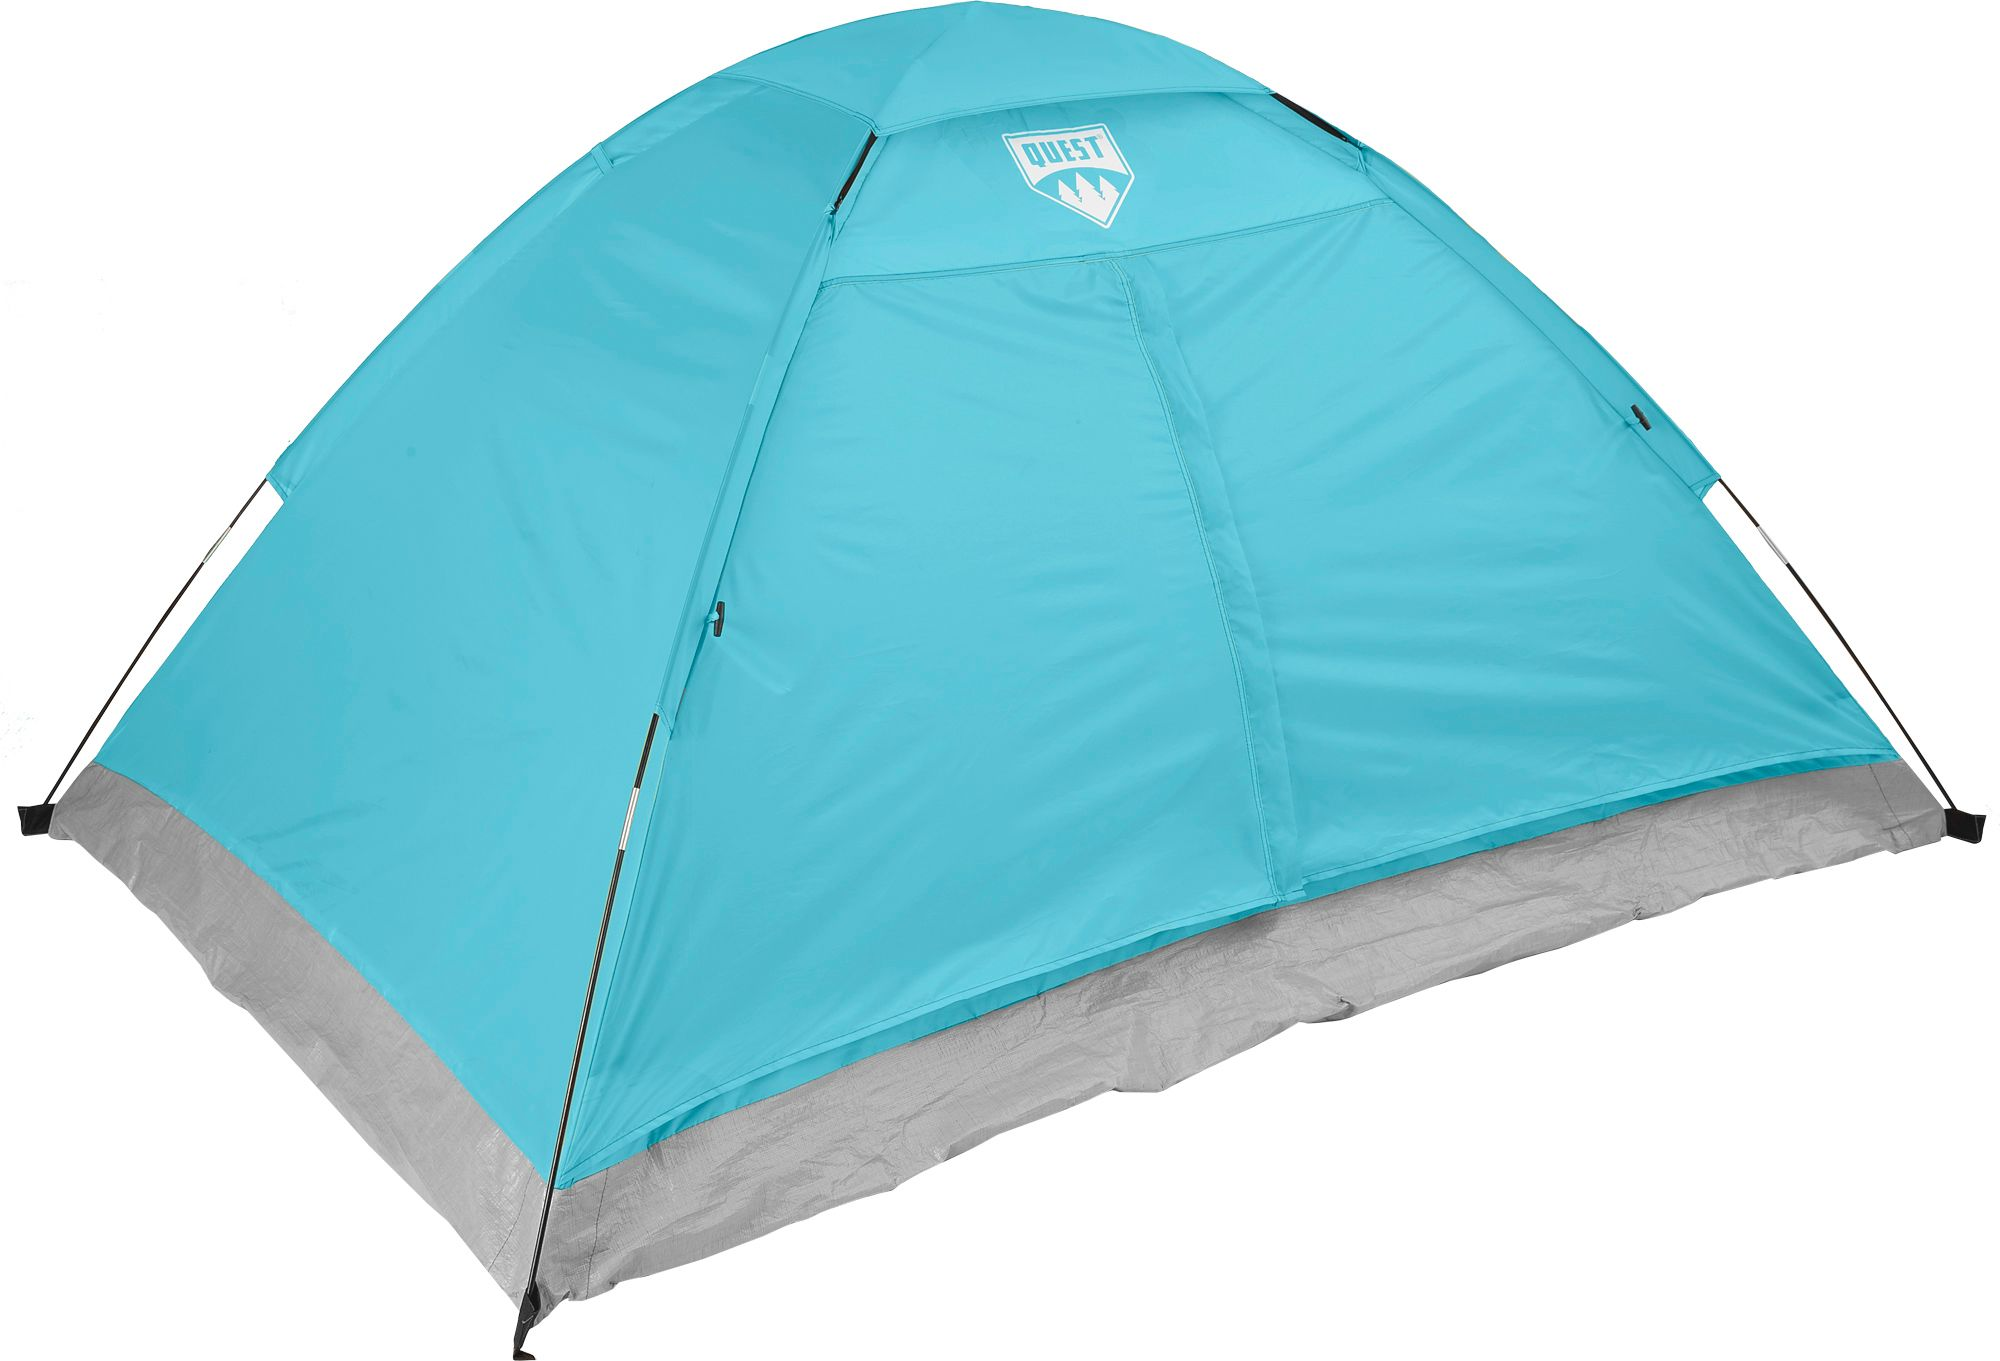 Quest 2 Person Dome Tent  sc 1 st  DICKu0027S Sporting Goods & Quest 2 Person Dome Tent | DICKu0027S Sporting Goods